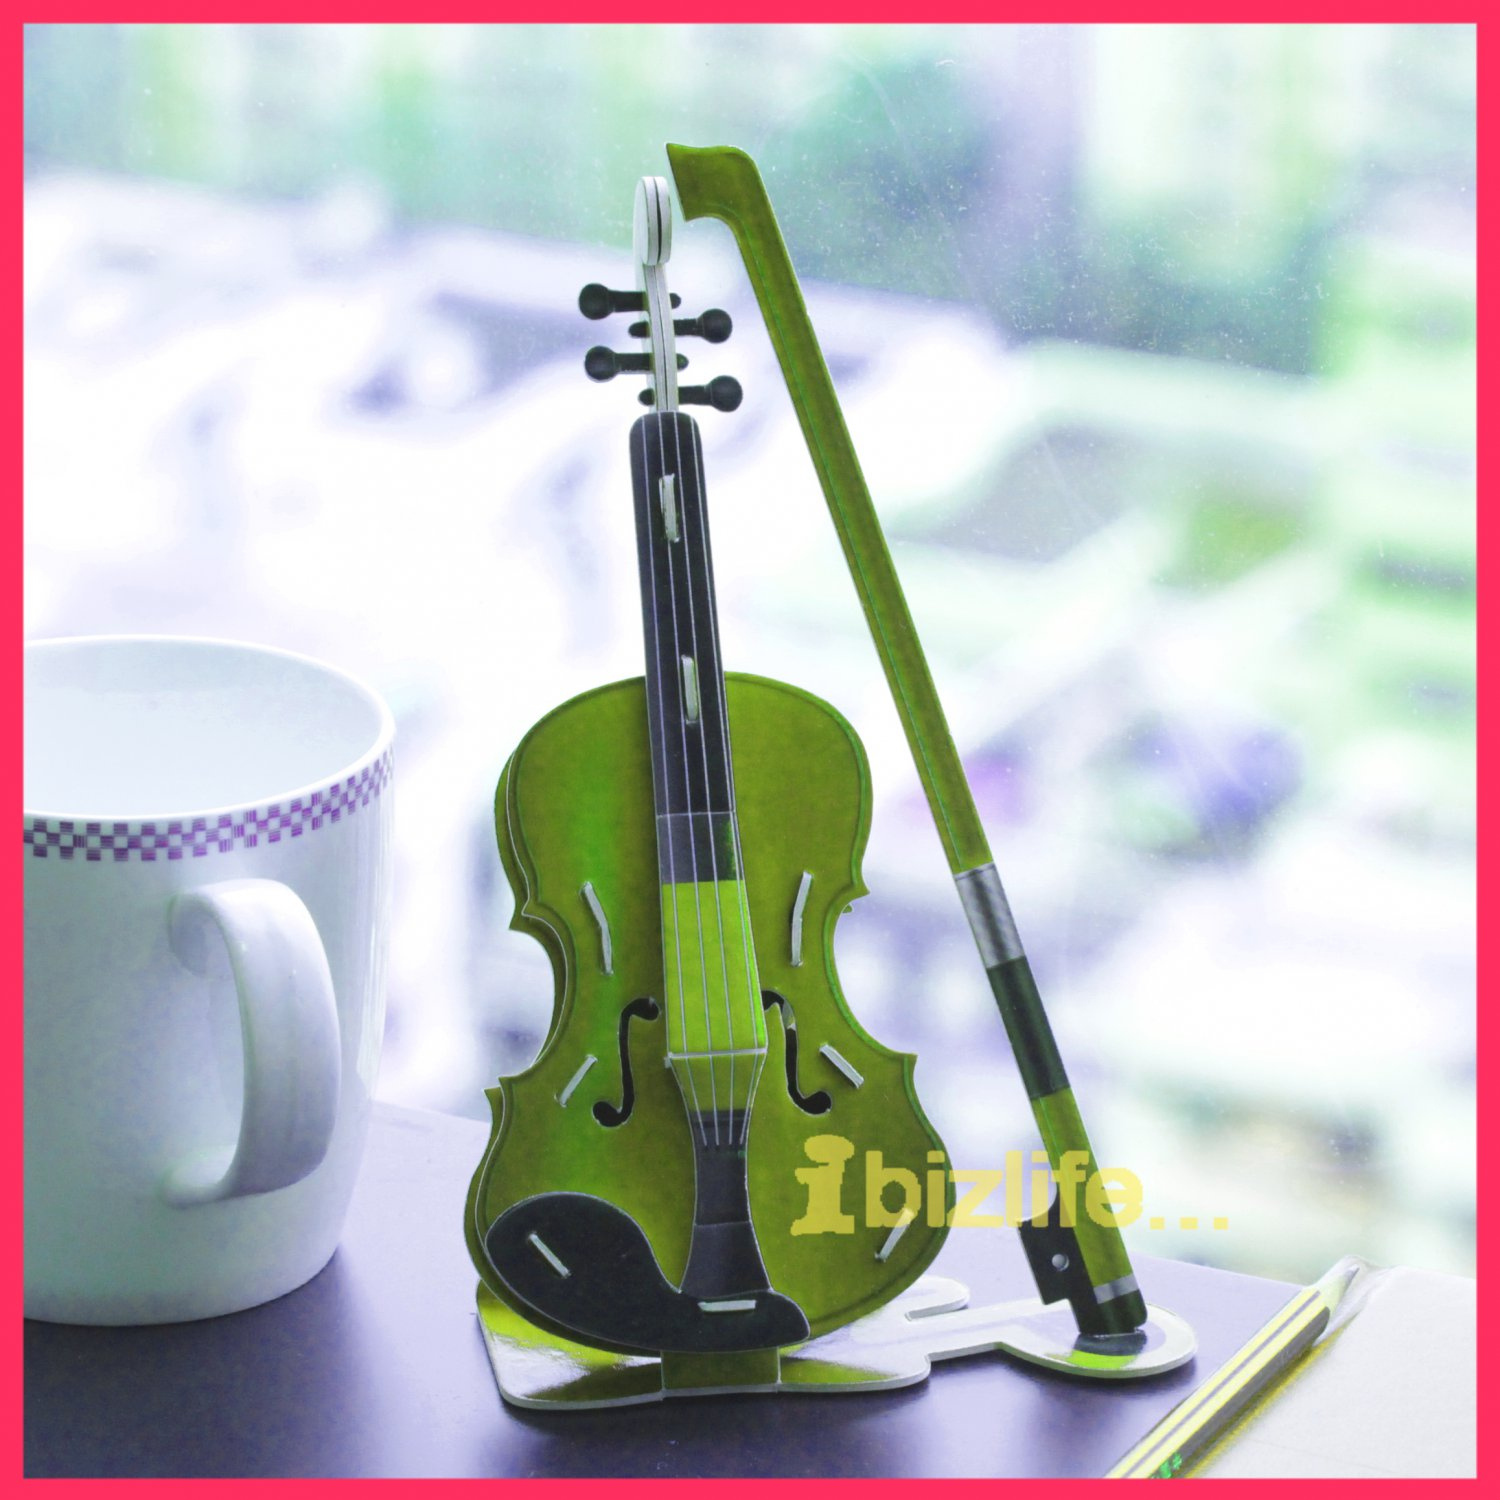 Calebou - VIOLIN (Musical) PAPER 3D puzzle DIY simple jigsaw model as gift